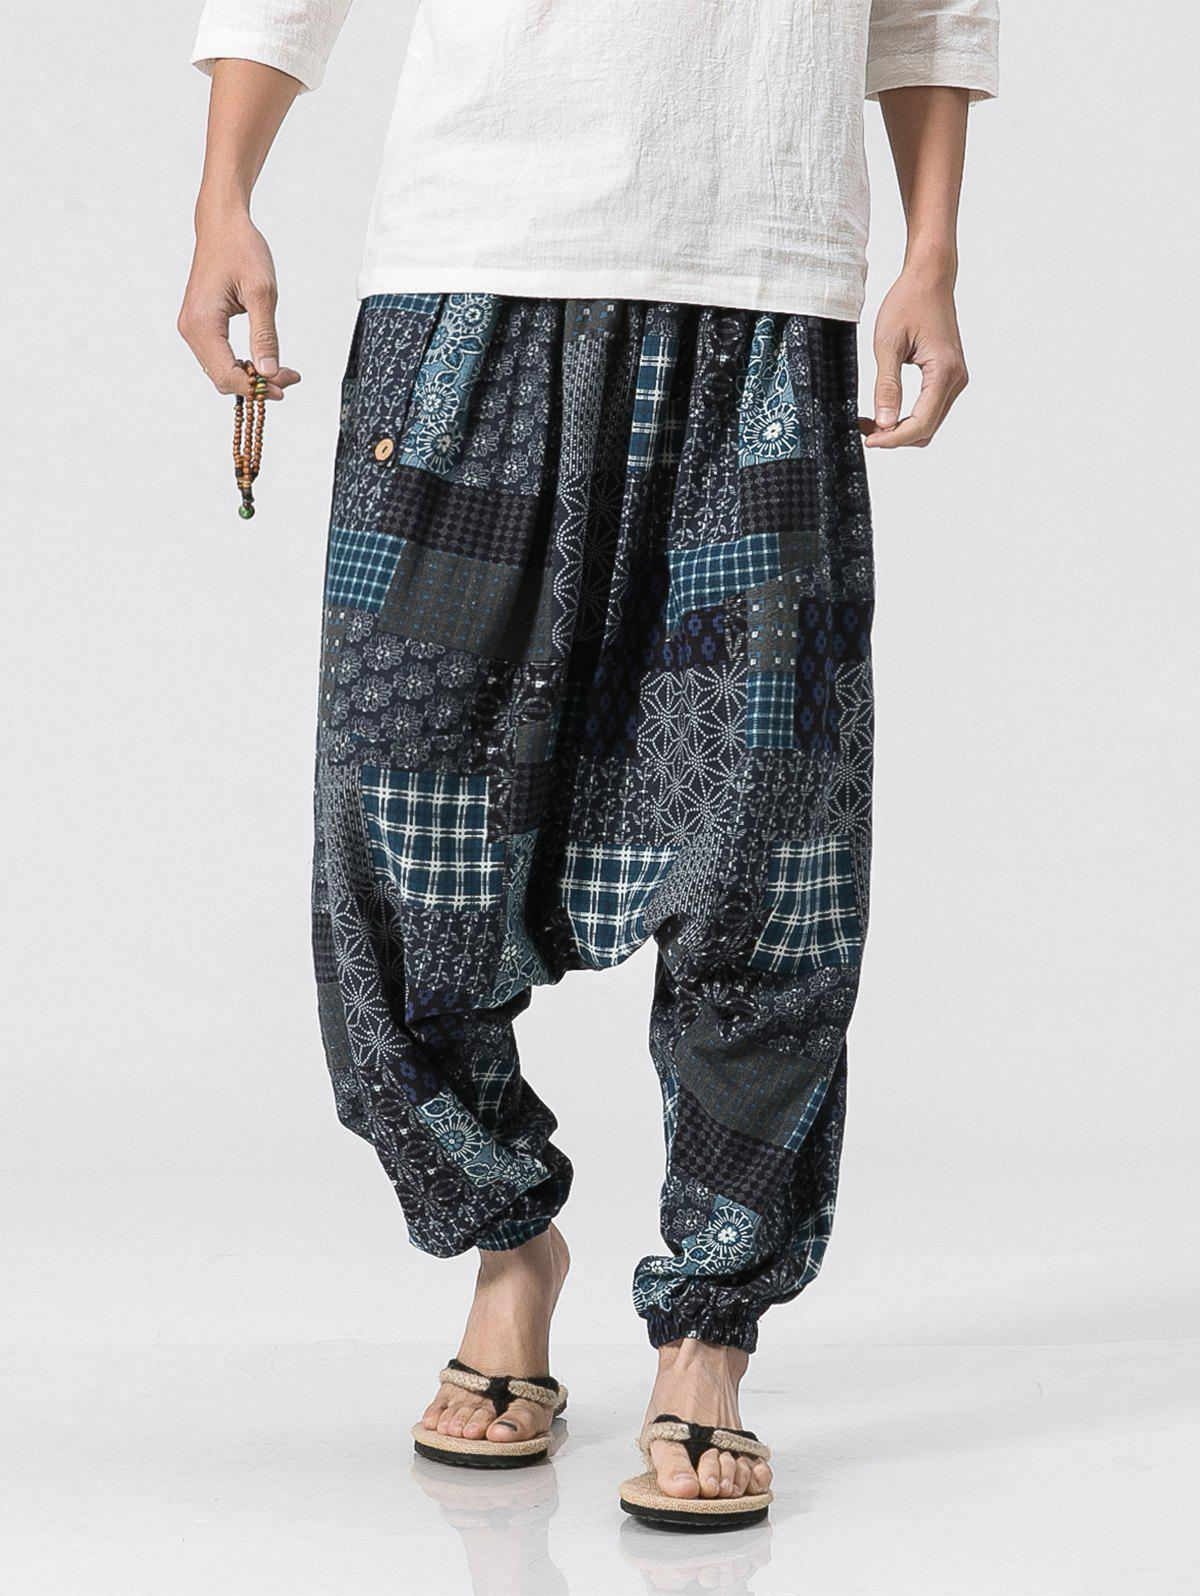 Plaid Panel Floral Print Jogger Pants - BLUE GRAY S